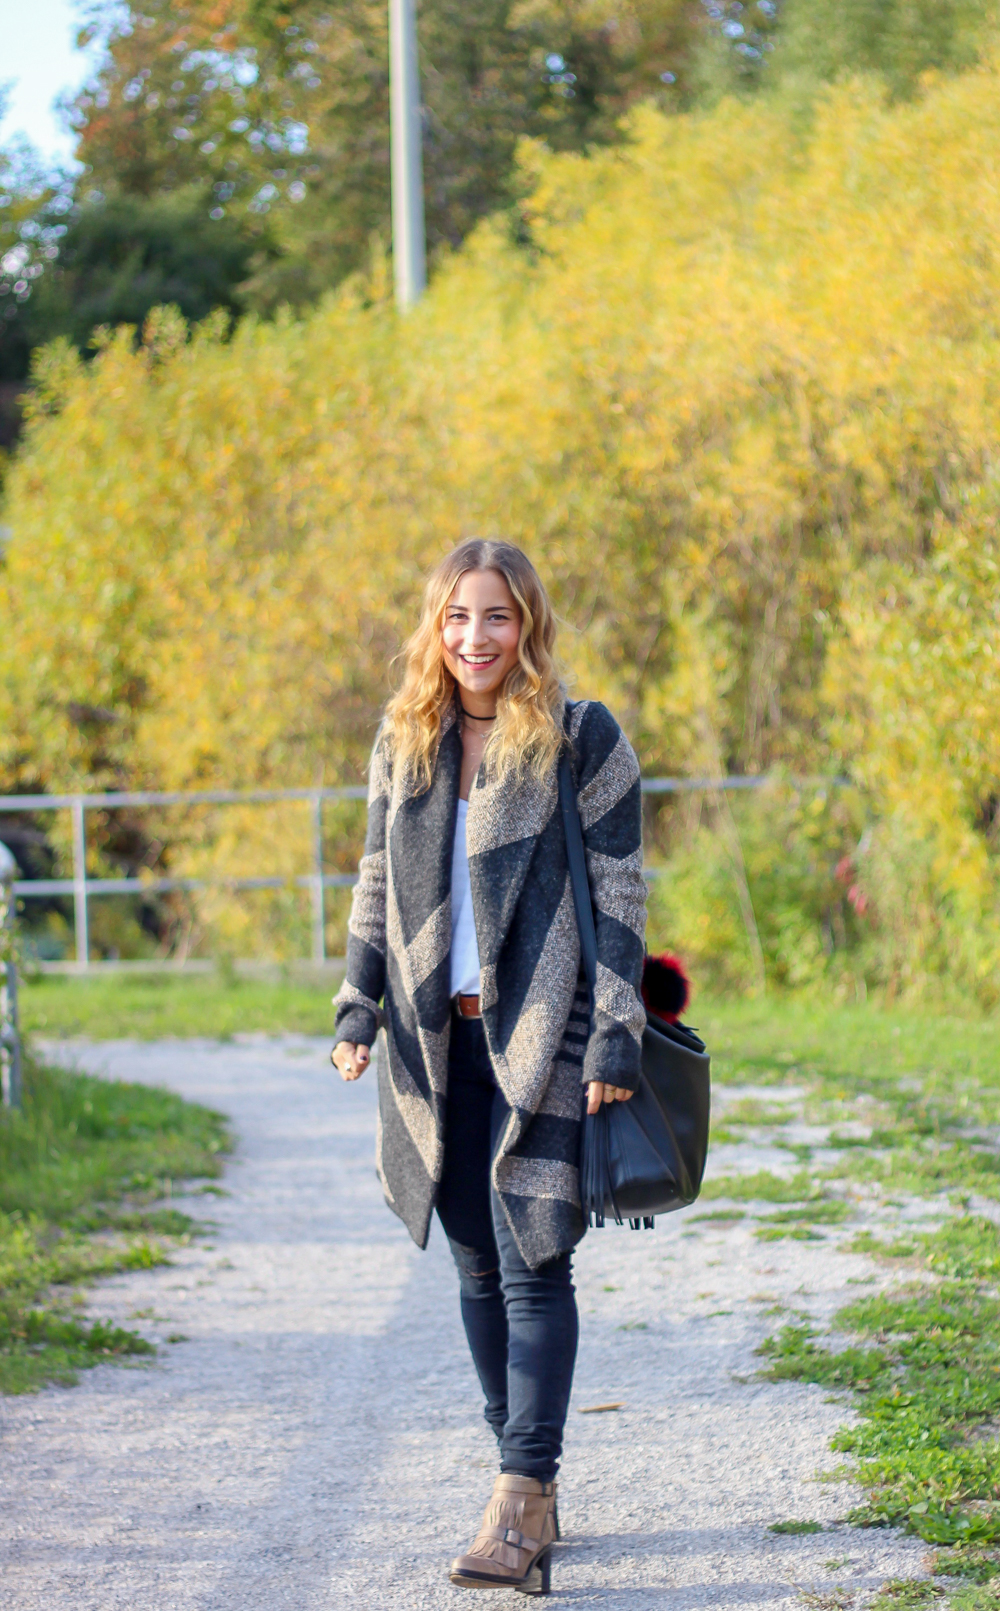 Toronto fashion, beauty and lifestyle blogger, Jackie Goldhar, shows you how to wear a Cardigan Coat for the fall